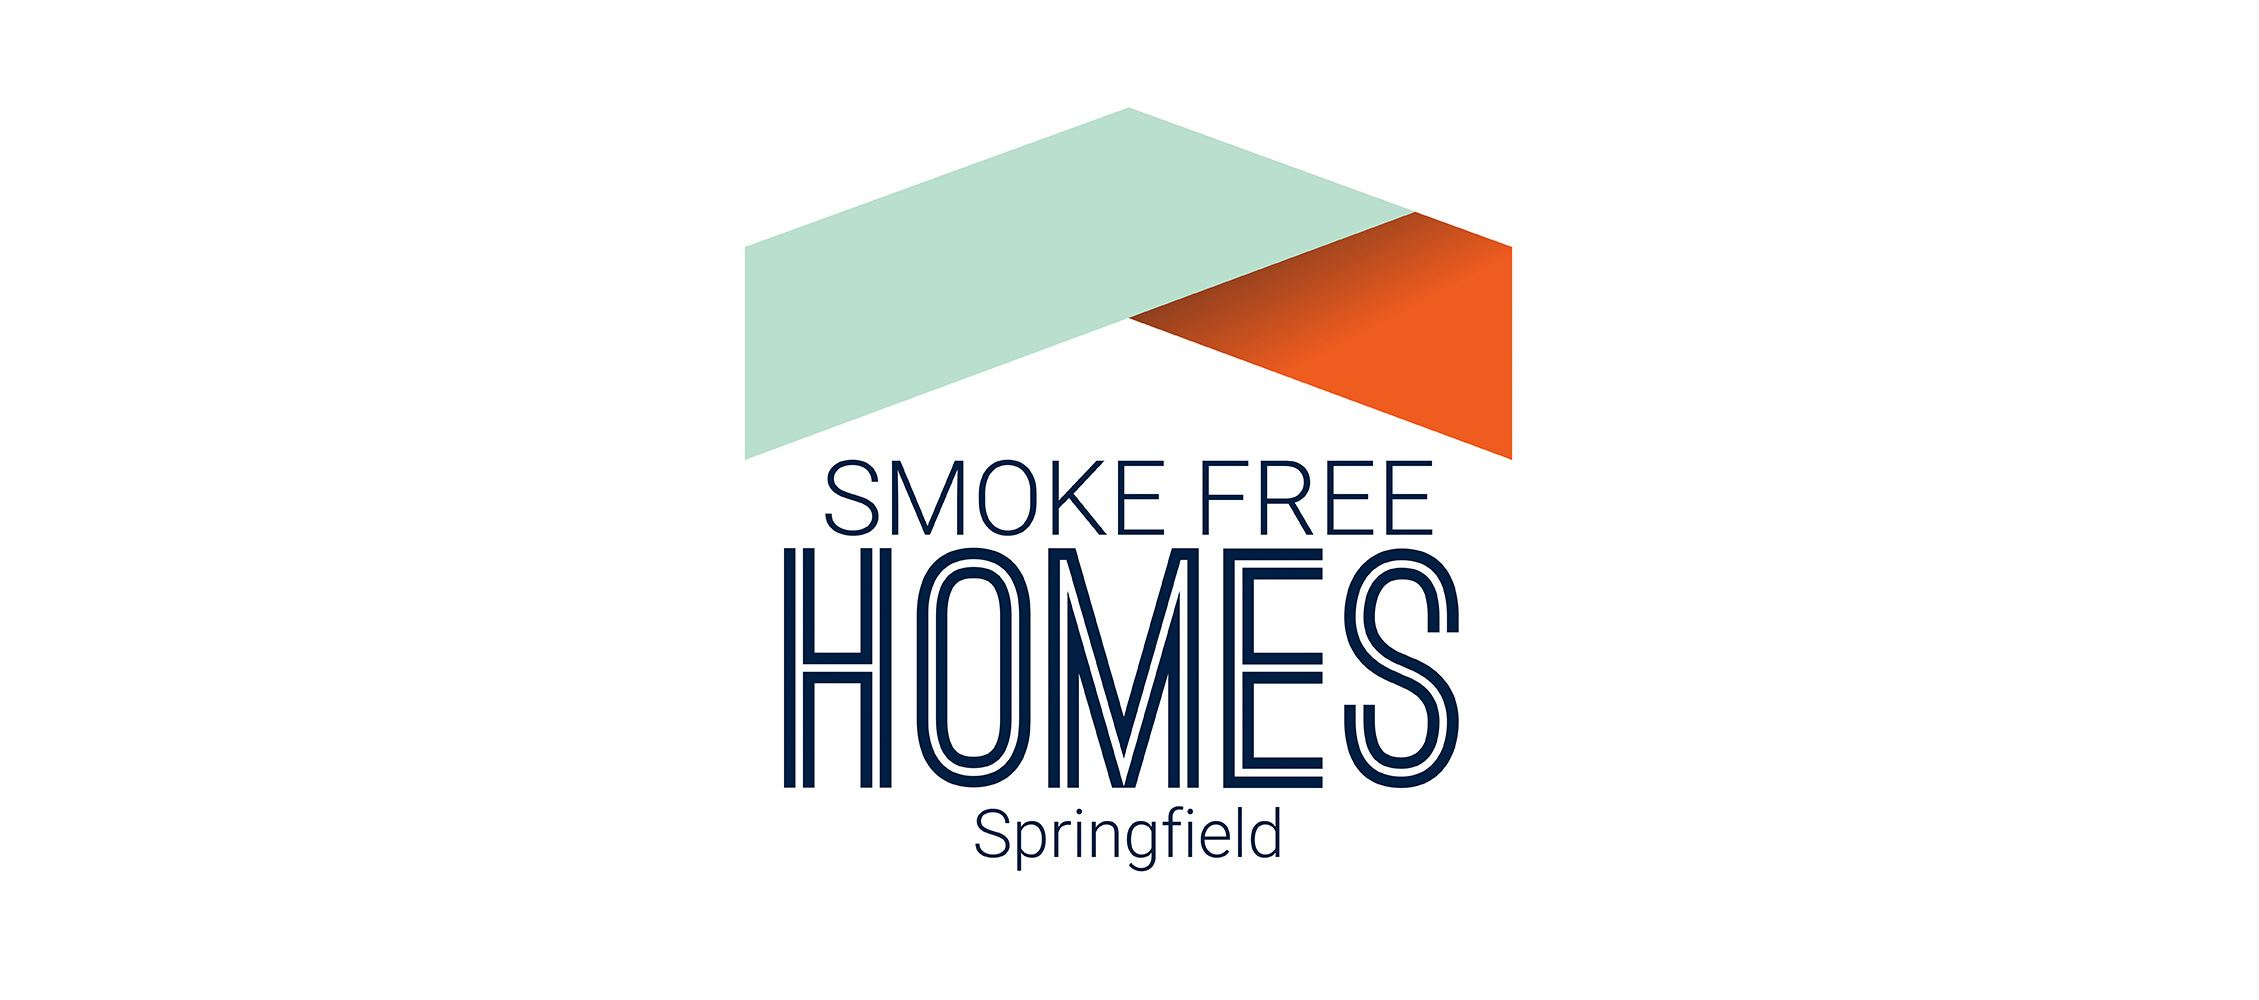 smokefreehomes-whitebanner_edited